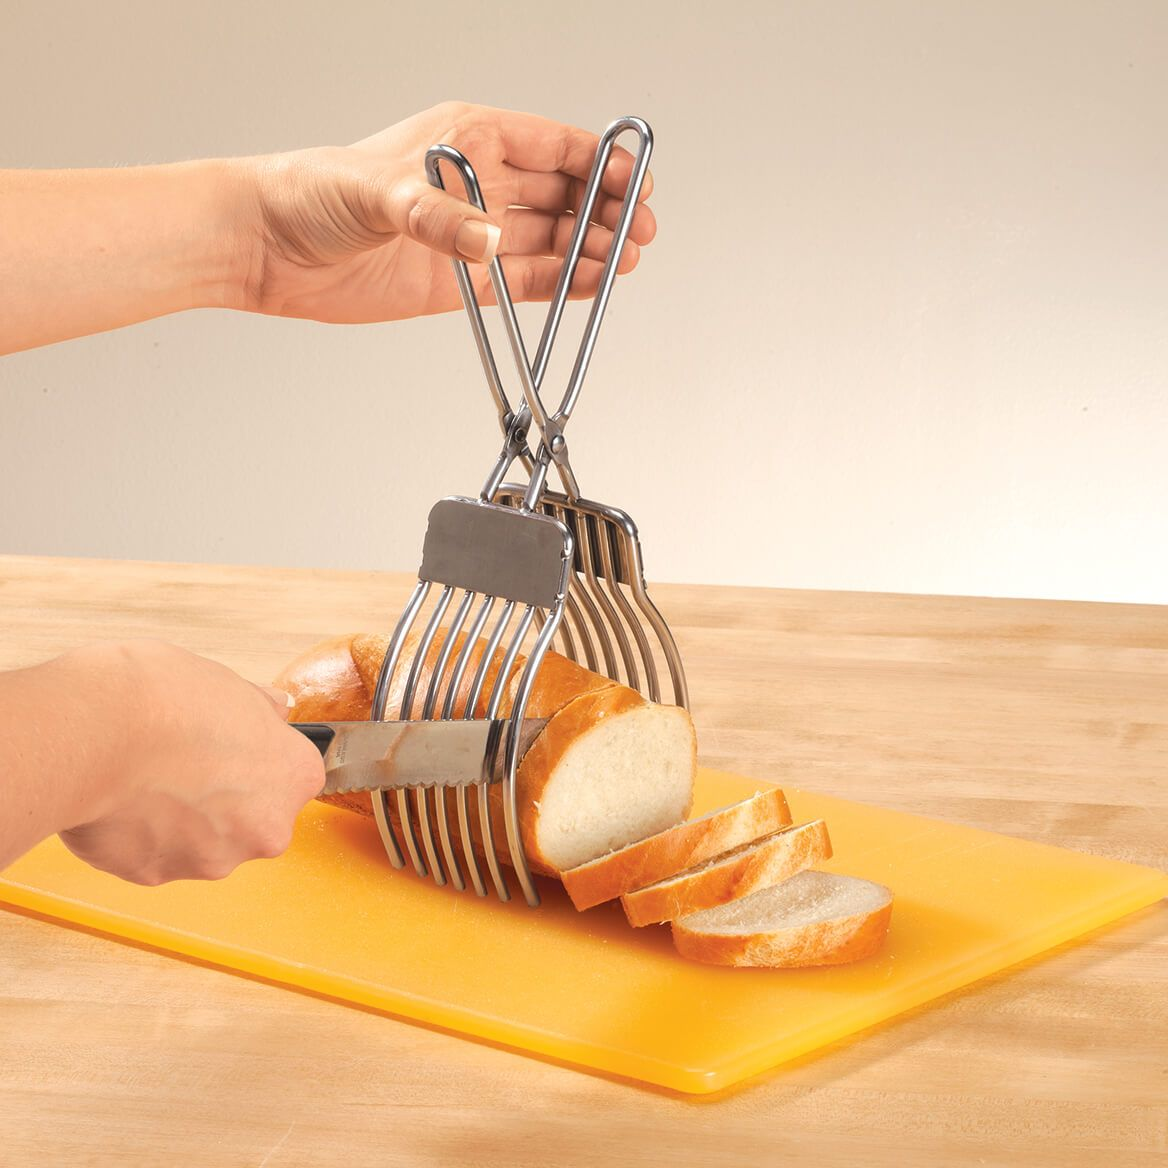 Stainless Steel Meat Slicing Tongs-372012